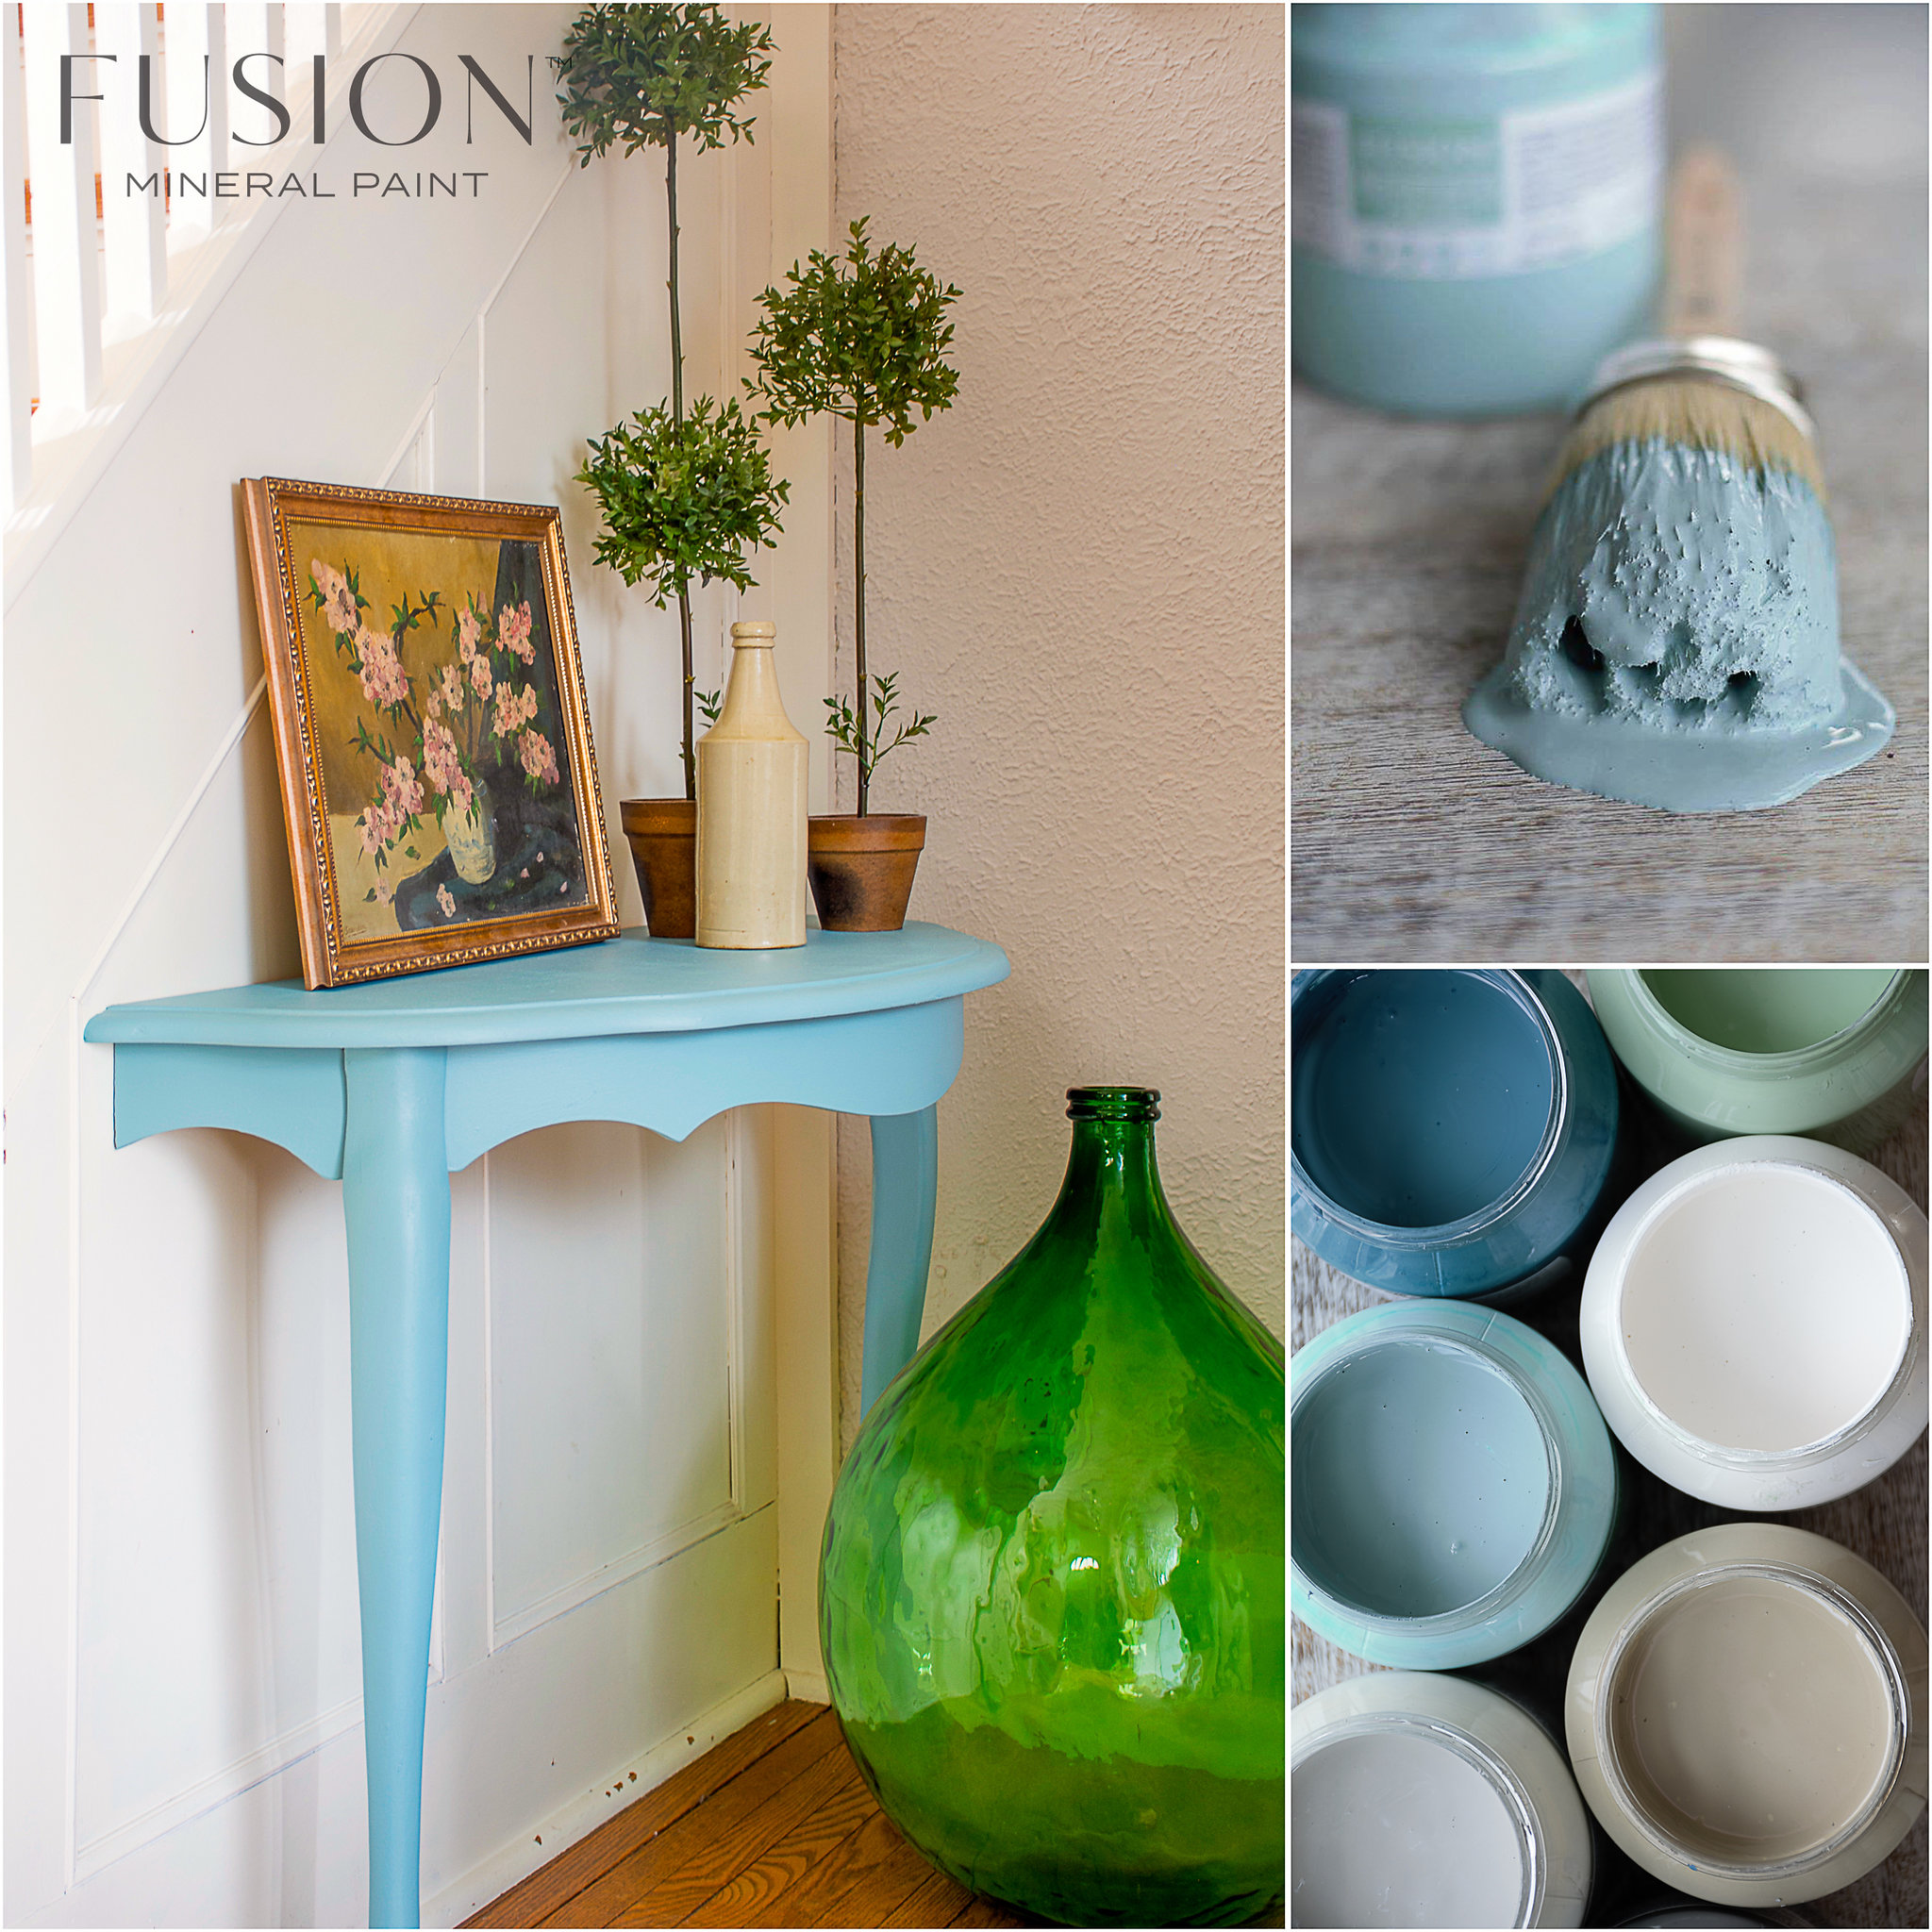 Table Painted in Heirloom Fusion Mineral Paint